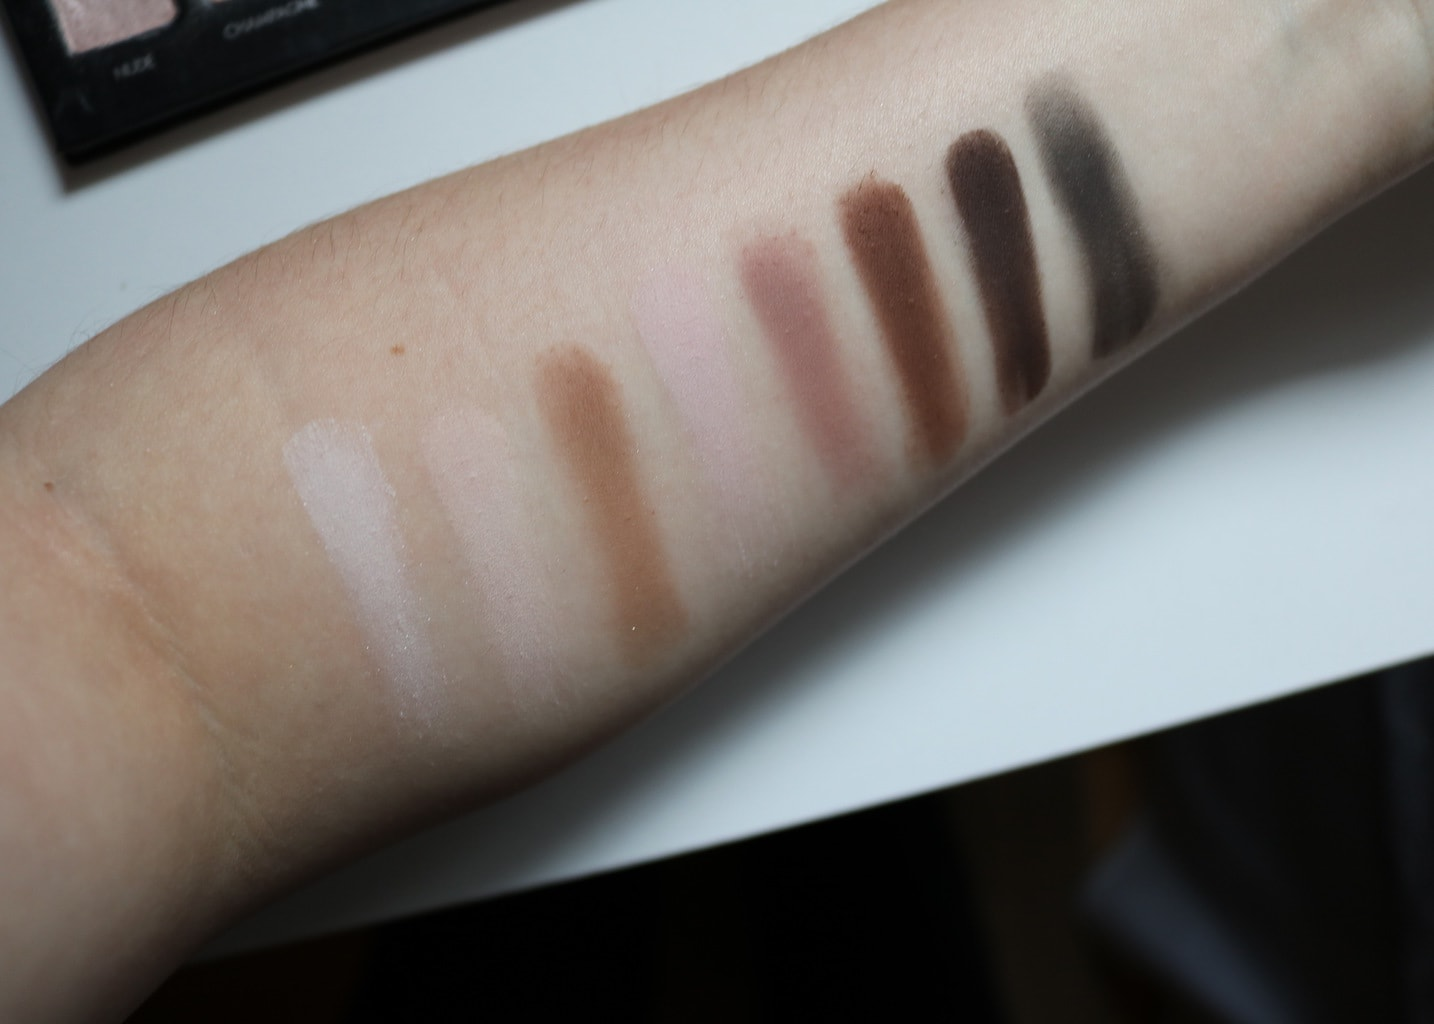 Lorac Pro Swatches (Top Row)